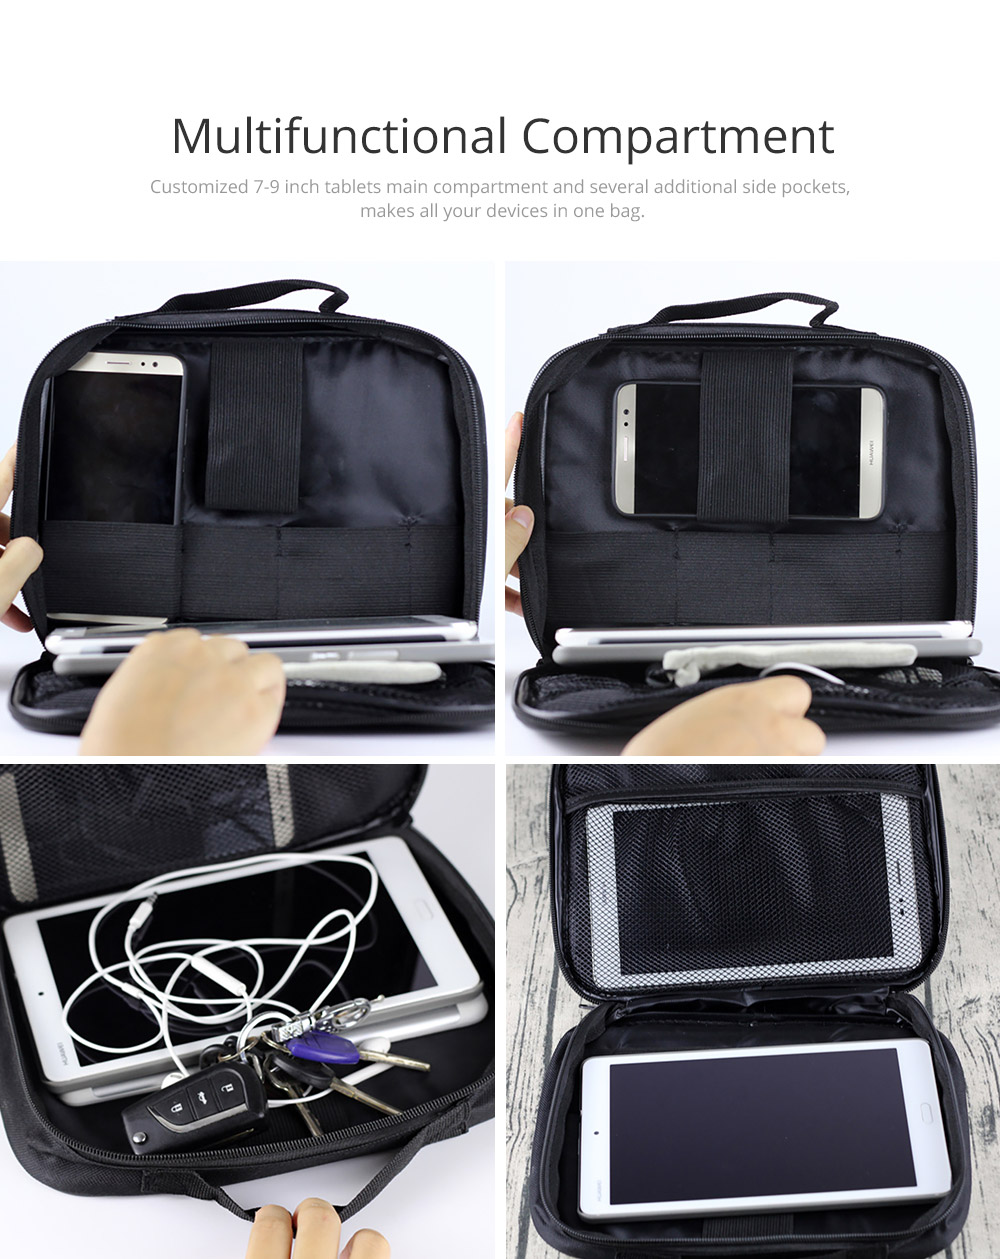 with Multifunctional Compartment